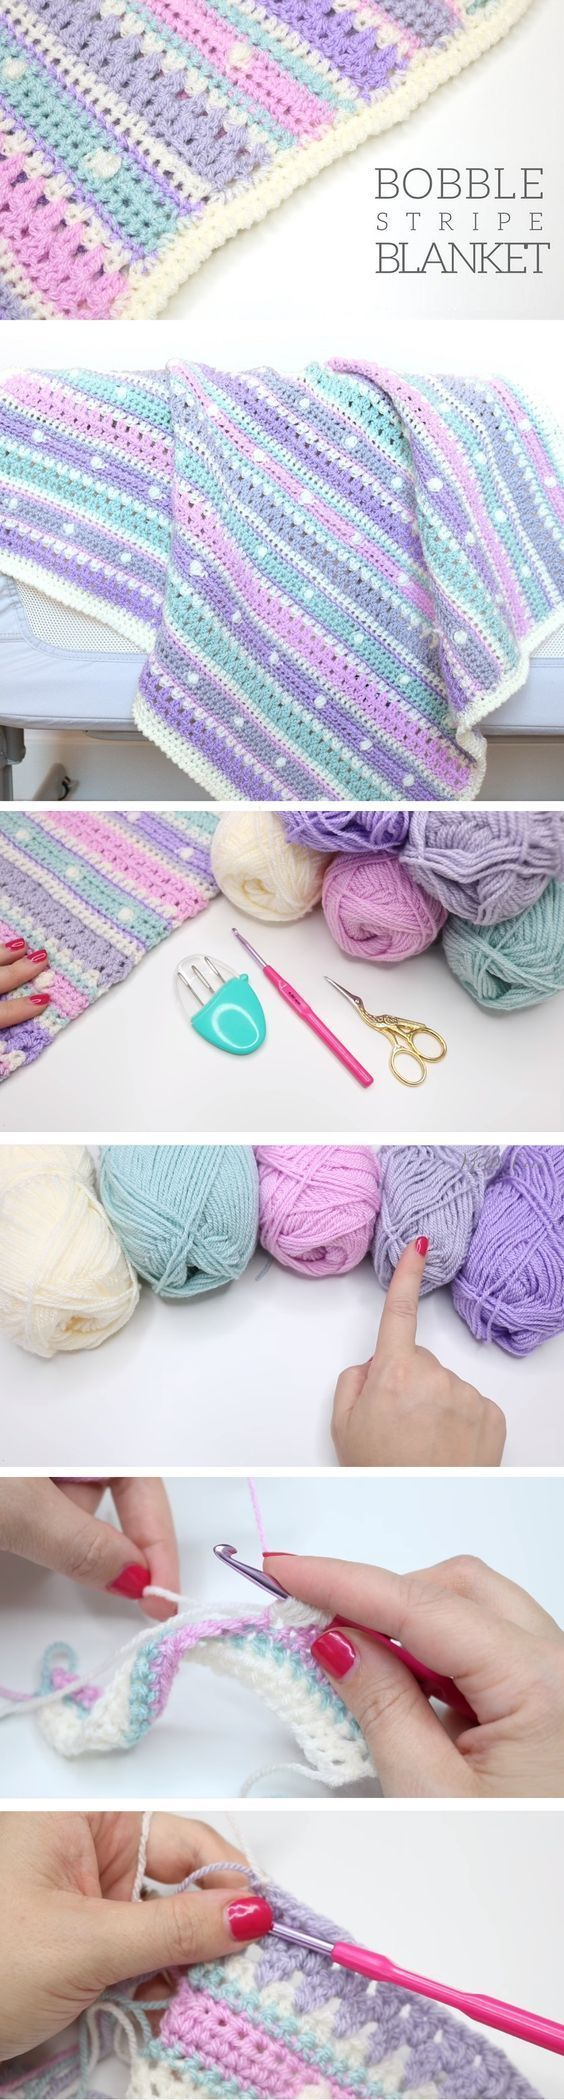 Bobble Stripe Blanket Tutorial.